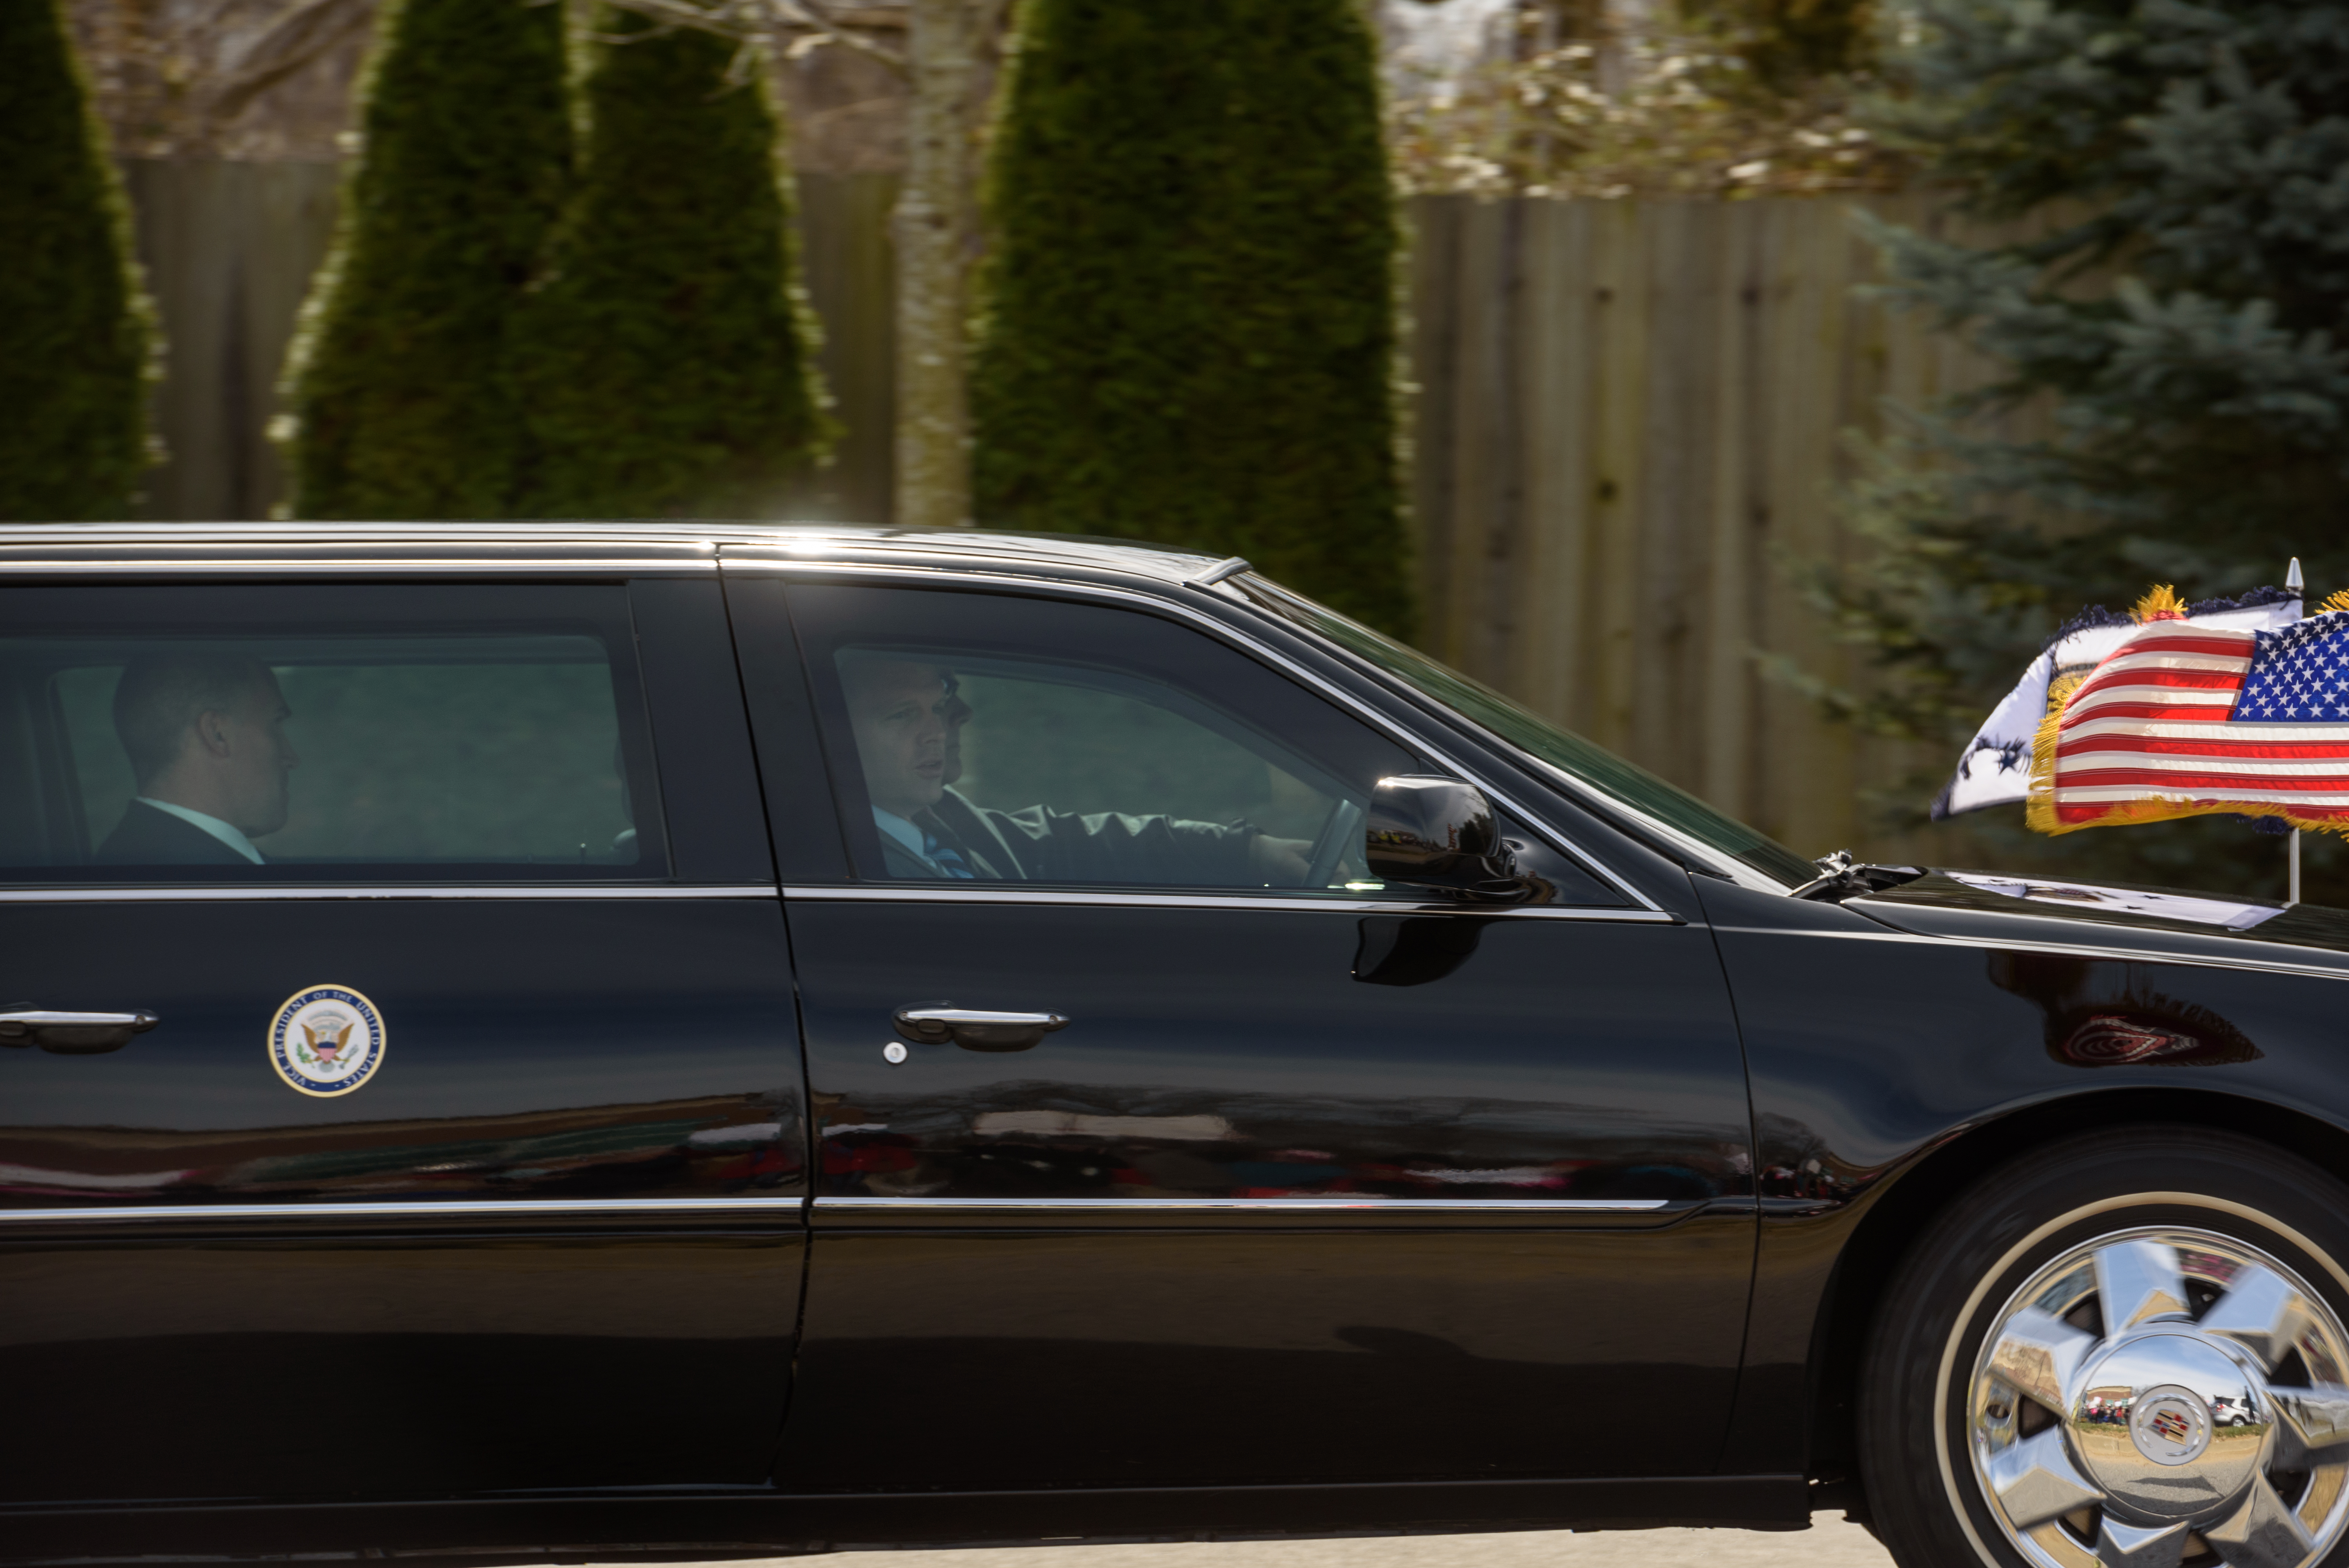 The Vice Presidential limousine passes by protesters on it's way to the airport.